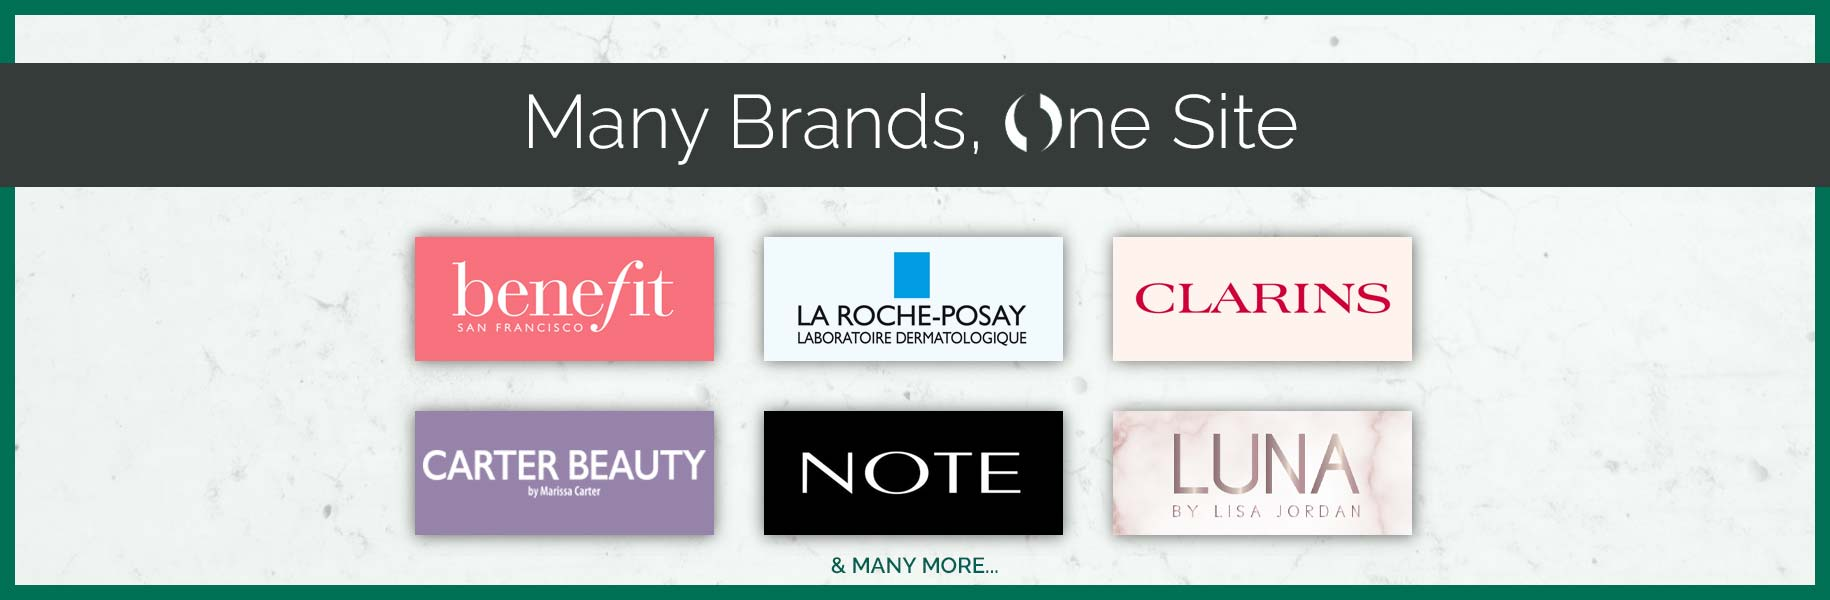 Many brands, one site